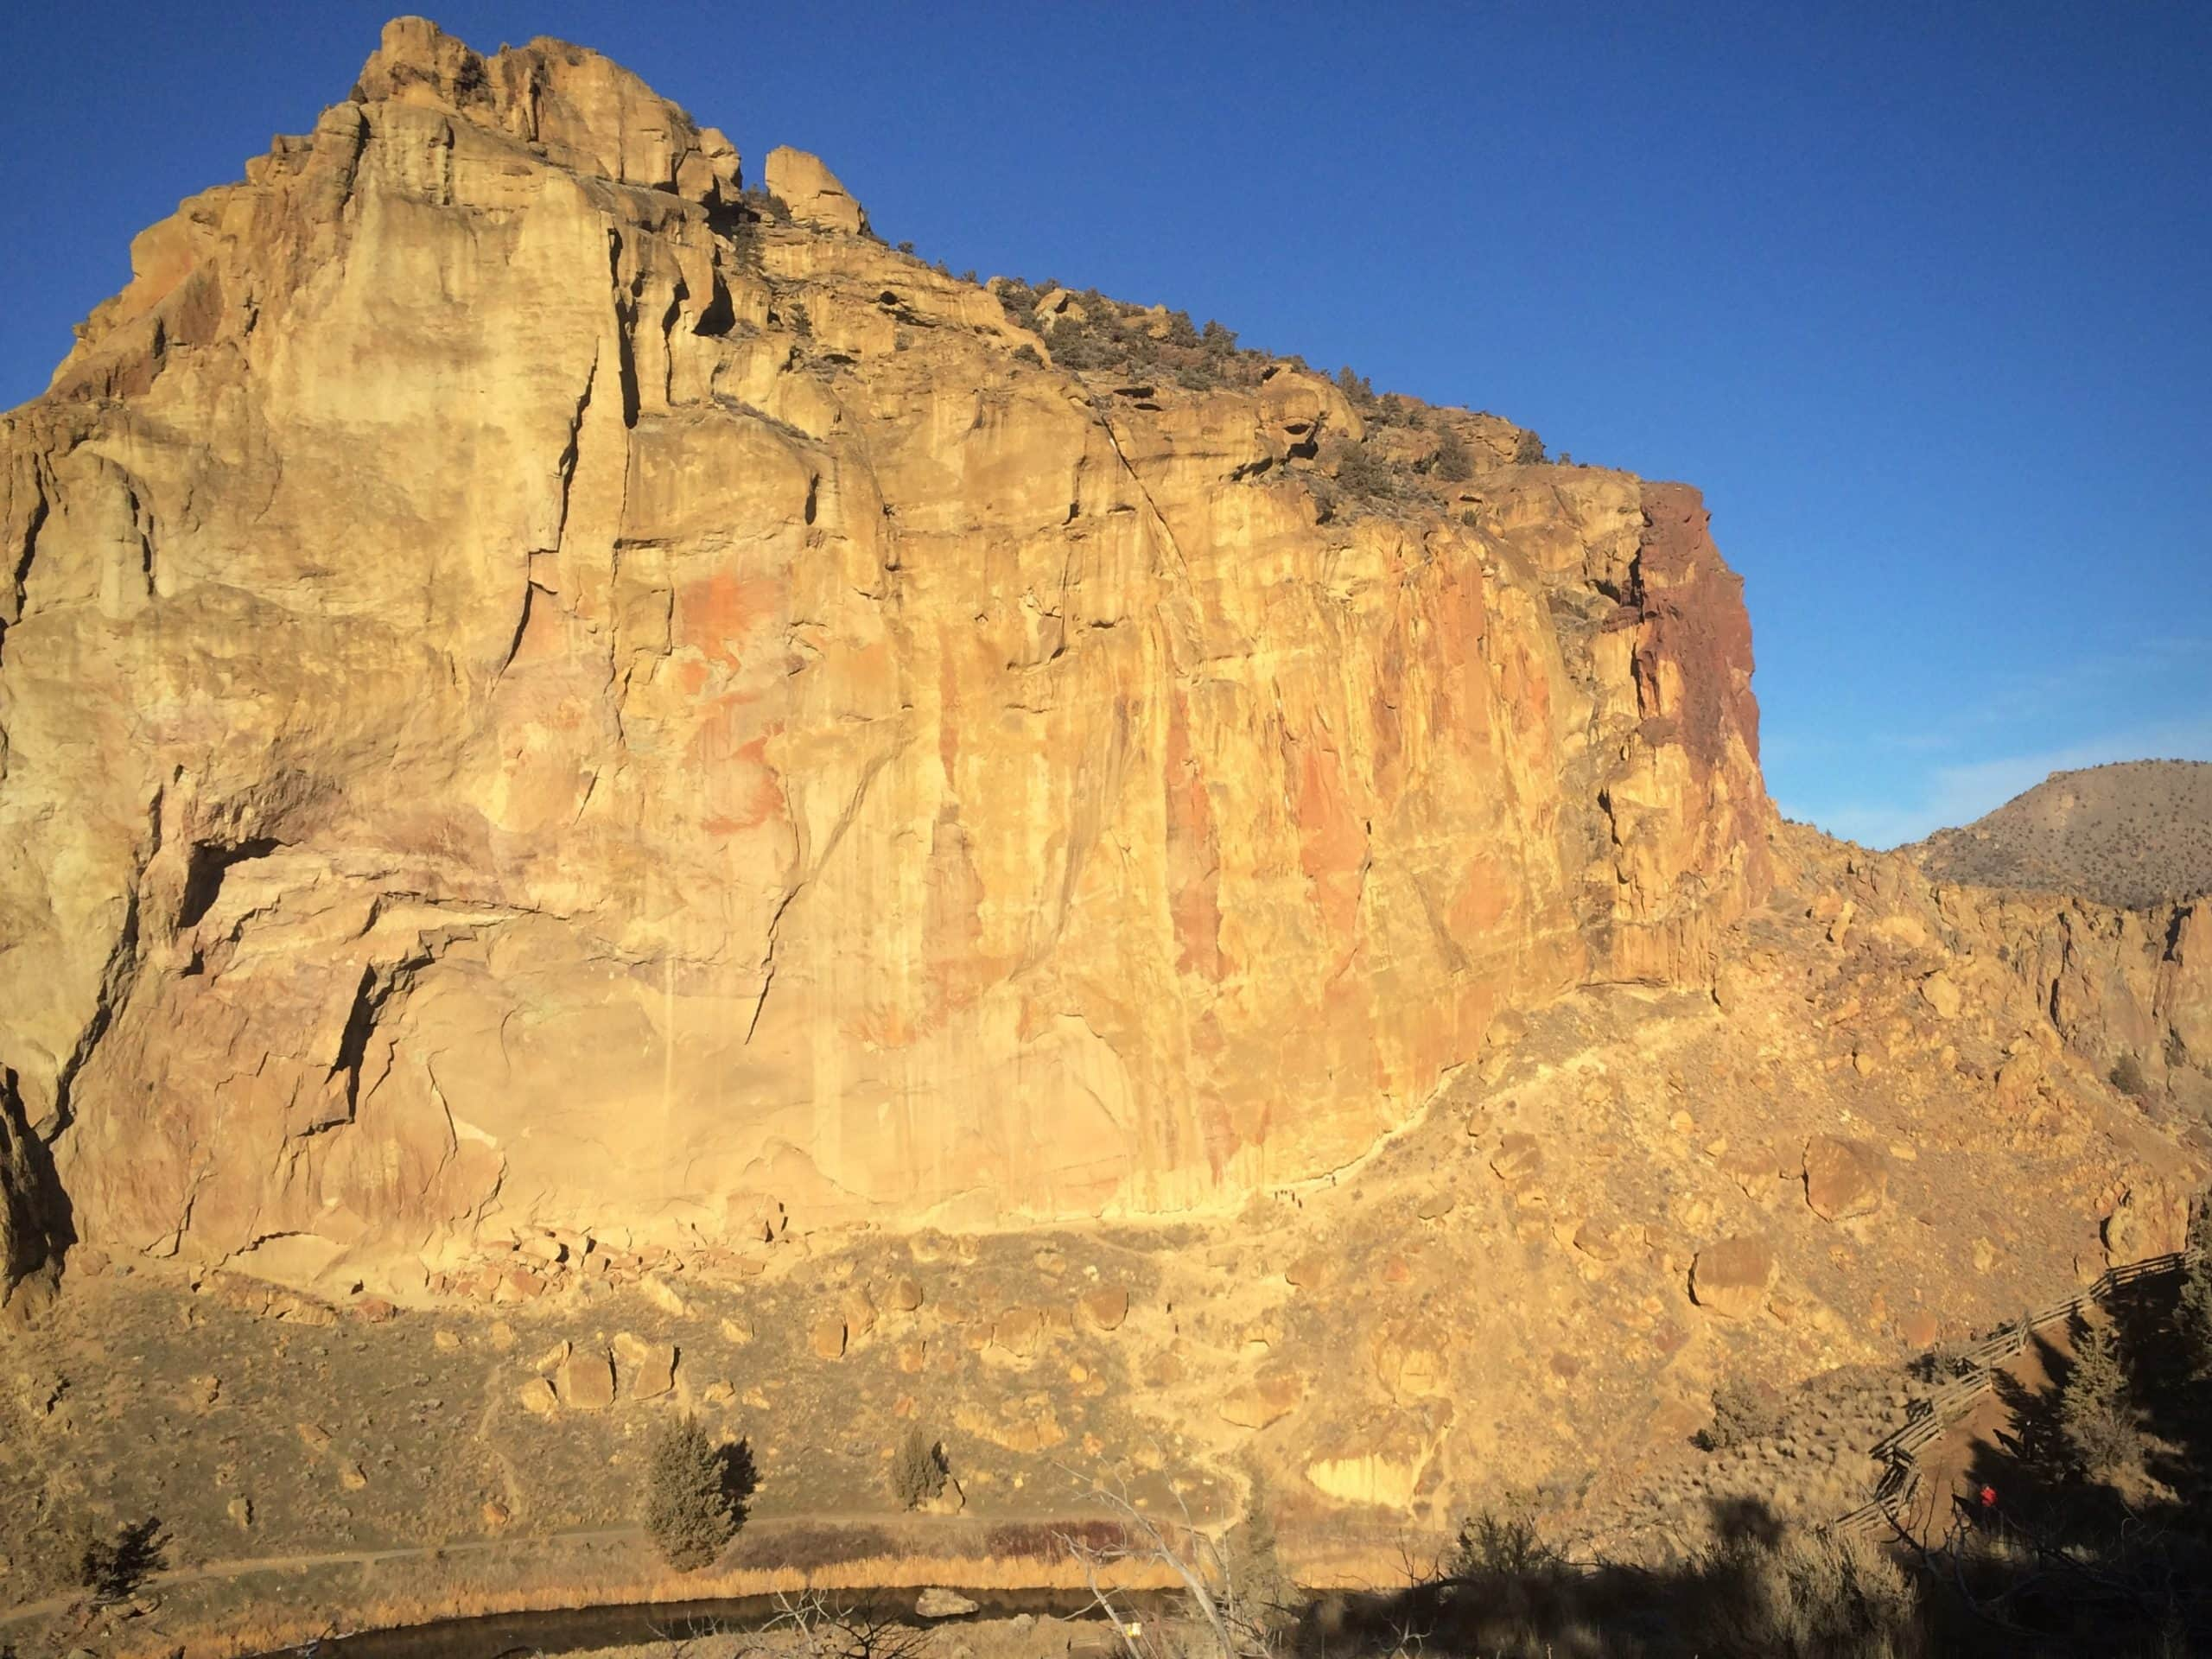 Morning Glory wall at Smith Rock state park in Oregon.